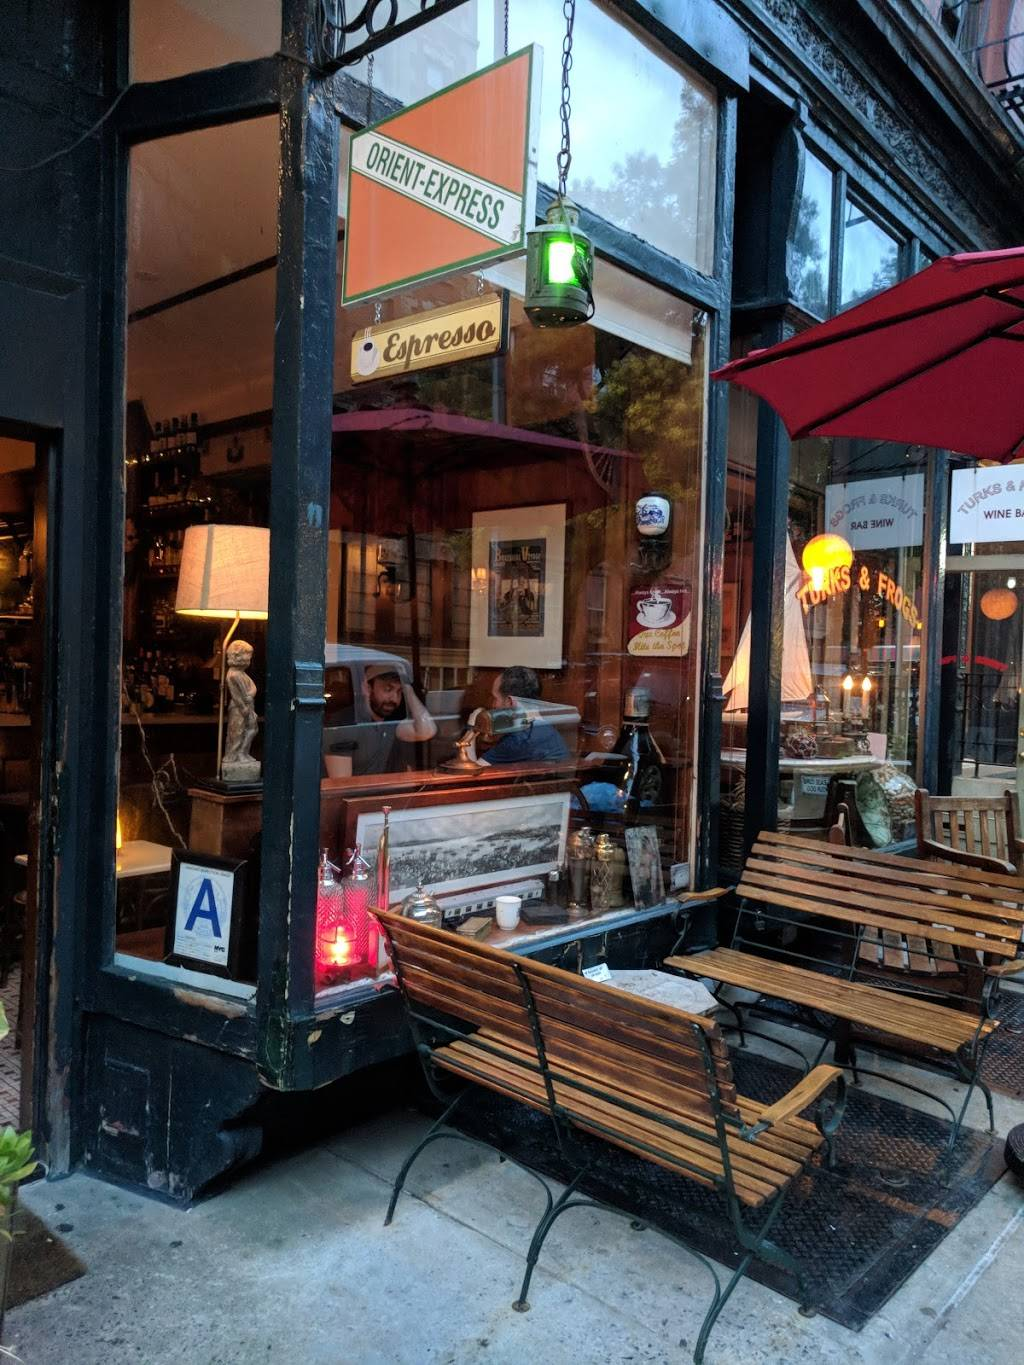 Orient Express | cafe | 325 W 11th St, New York, NY 10014, USA | 2126918845 OR +1 212-691-8845